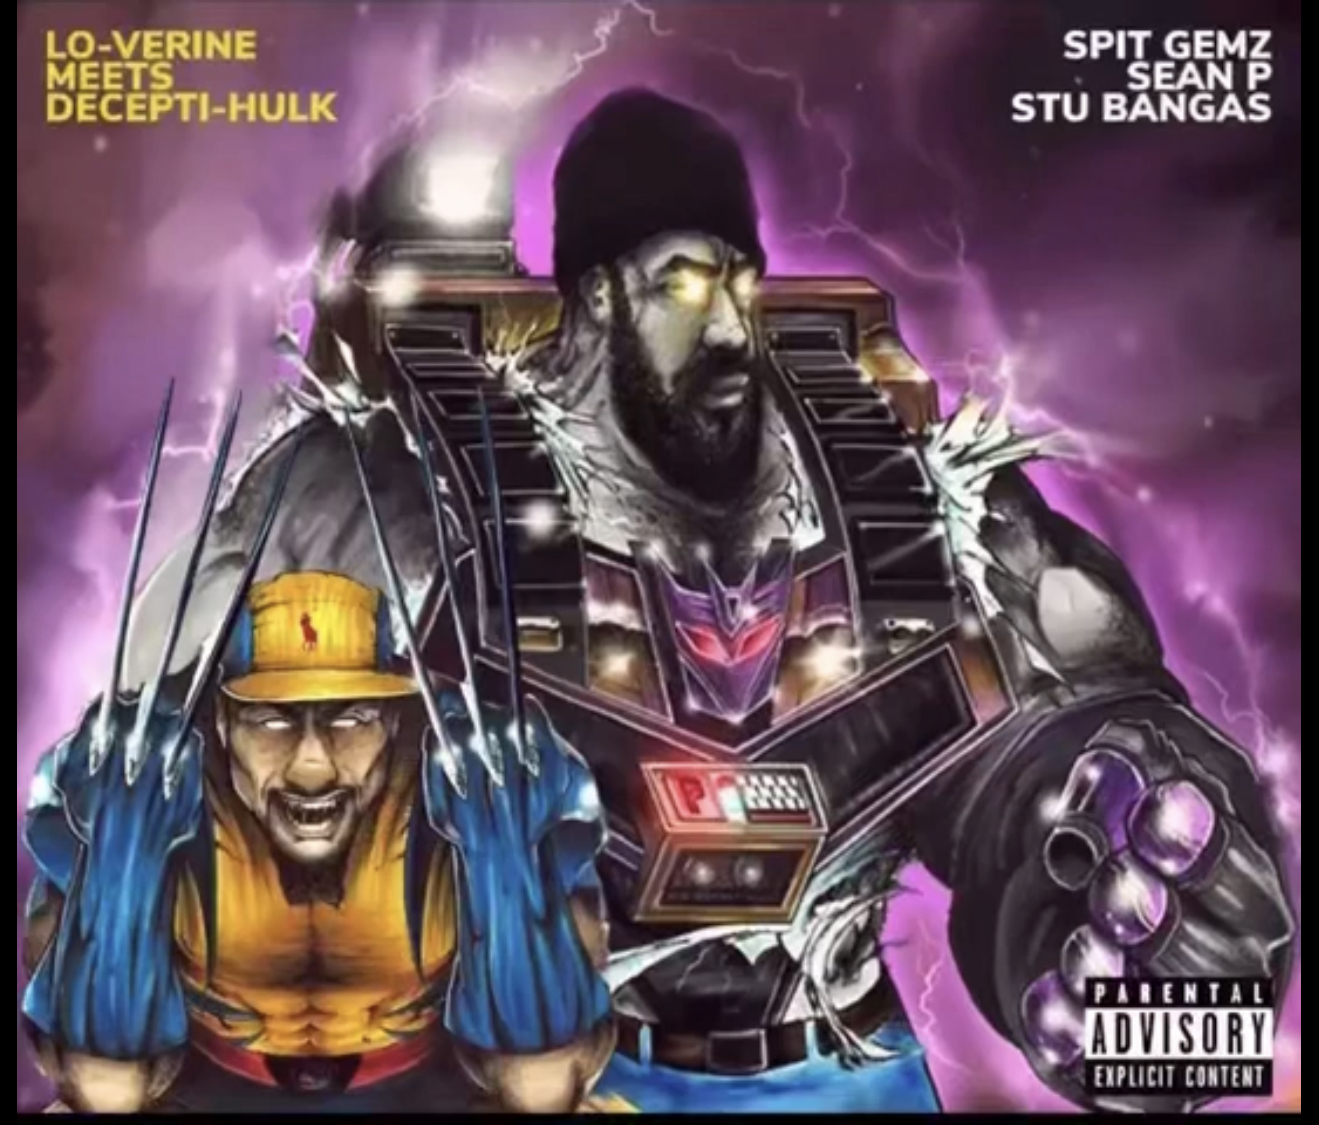 Spit Gemz and Stu Bangas featuring Sean Price (UNRELEASED SONG)